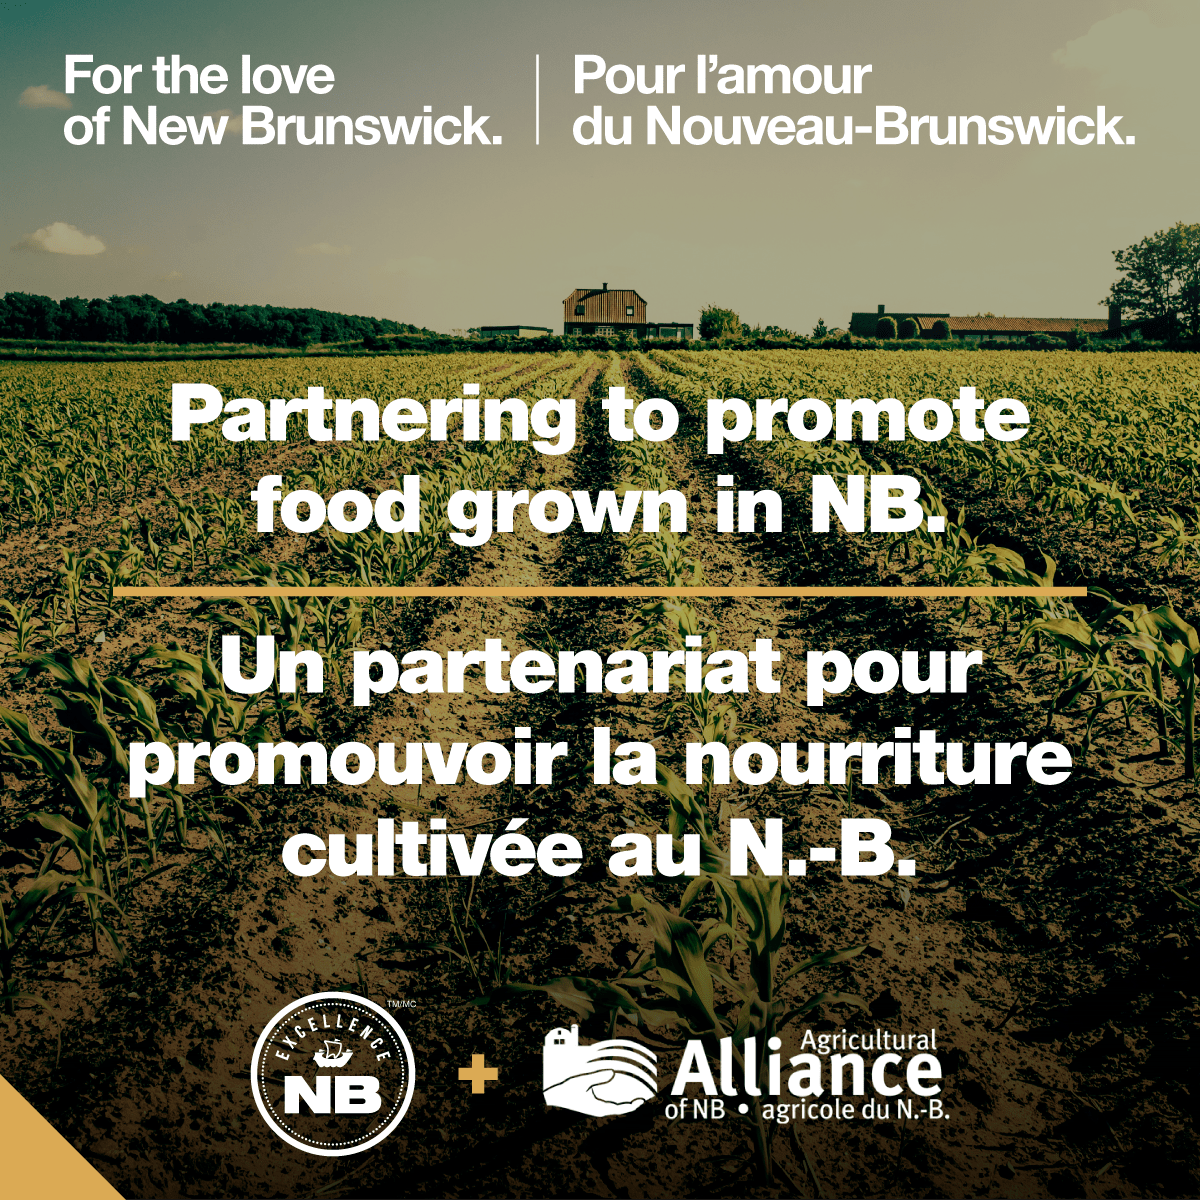 For the love of New Brunswick